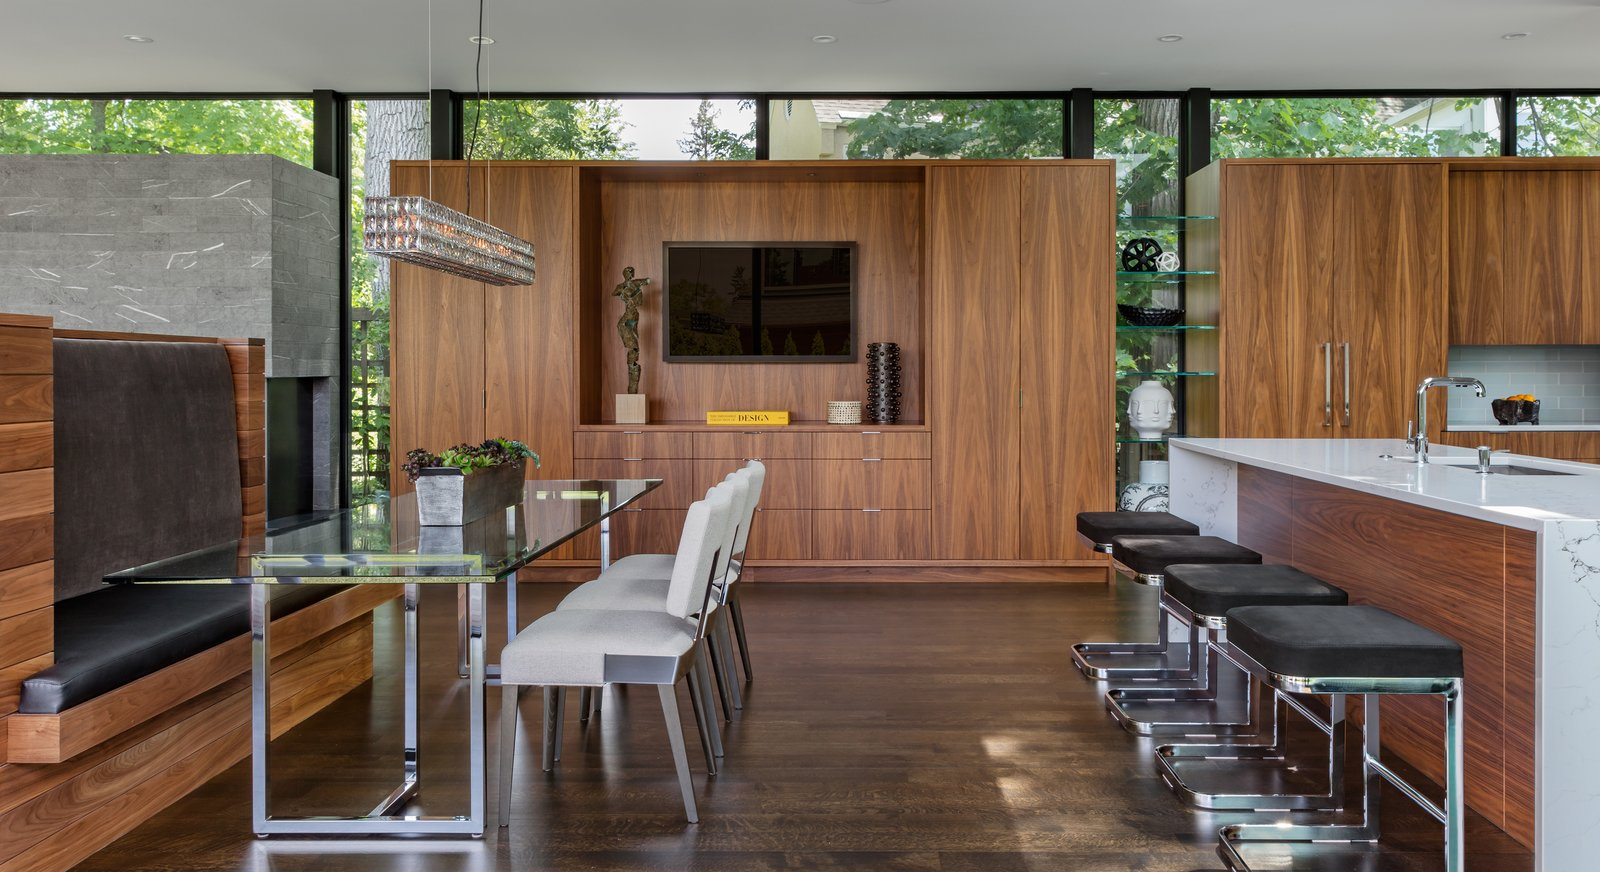 Chair, Table, Bench, Storage, Accent Lighting, Pendant Lighting, Stools, Bar, Dark Hardwood Floor, Engineered Quartz Counter, Dining Room, Drop In Sink, and Ceiling Lighting  Calhoun Pavilions Residence by Peterssen/Keller Architecture